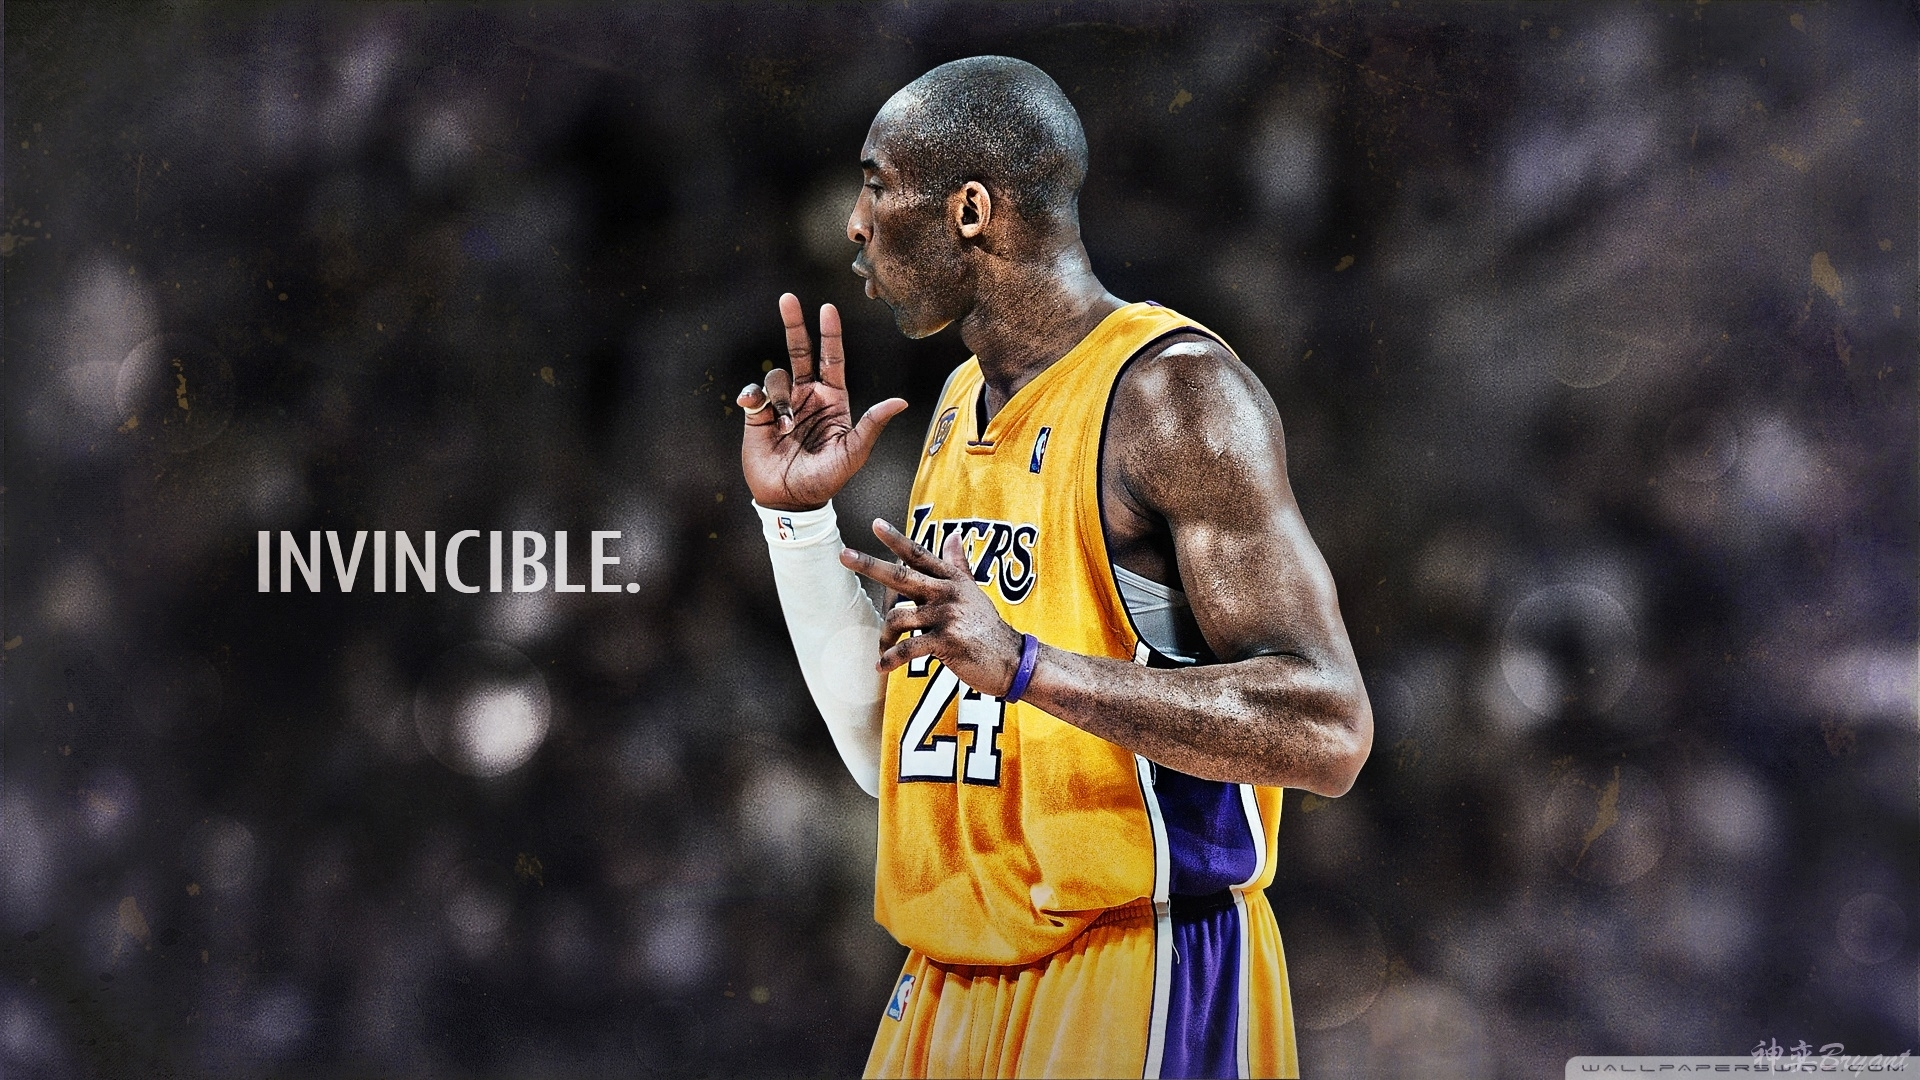 10 Latest Kobe Bryant Desktop Wallpaper FULL HD 1920×1080 For PC Background